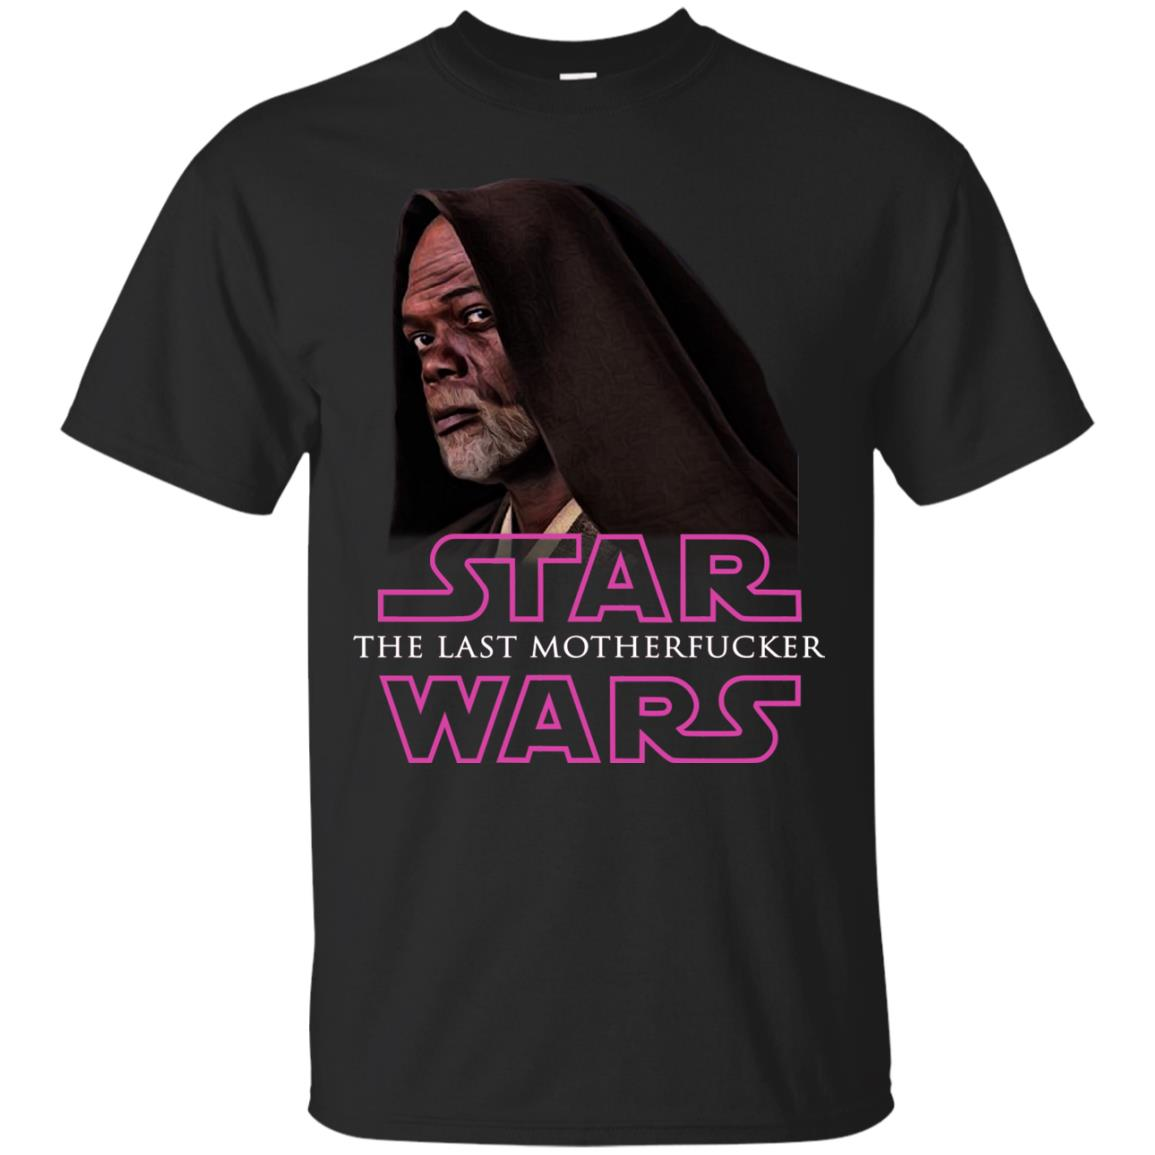 image 761 - Star The Last Motherfucker Wars Shirt, Sweatshirt, Hoodie